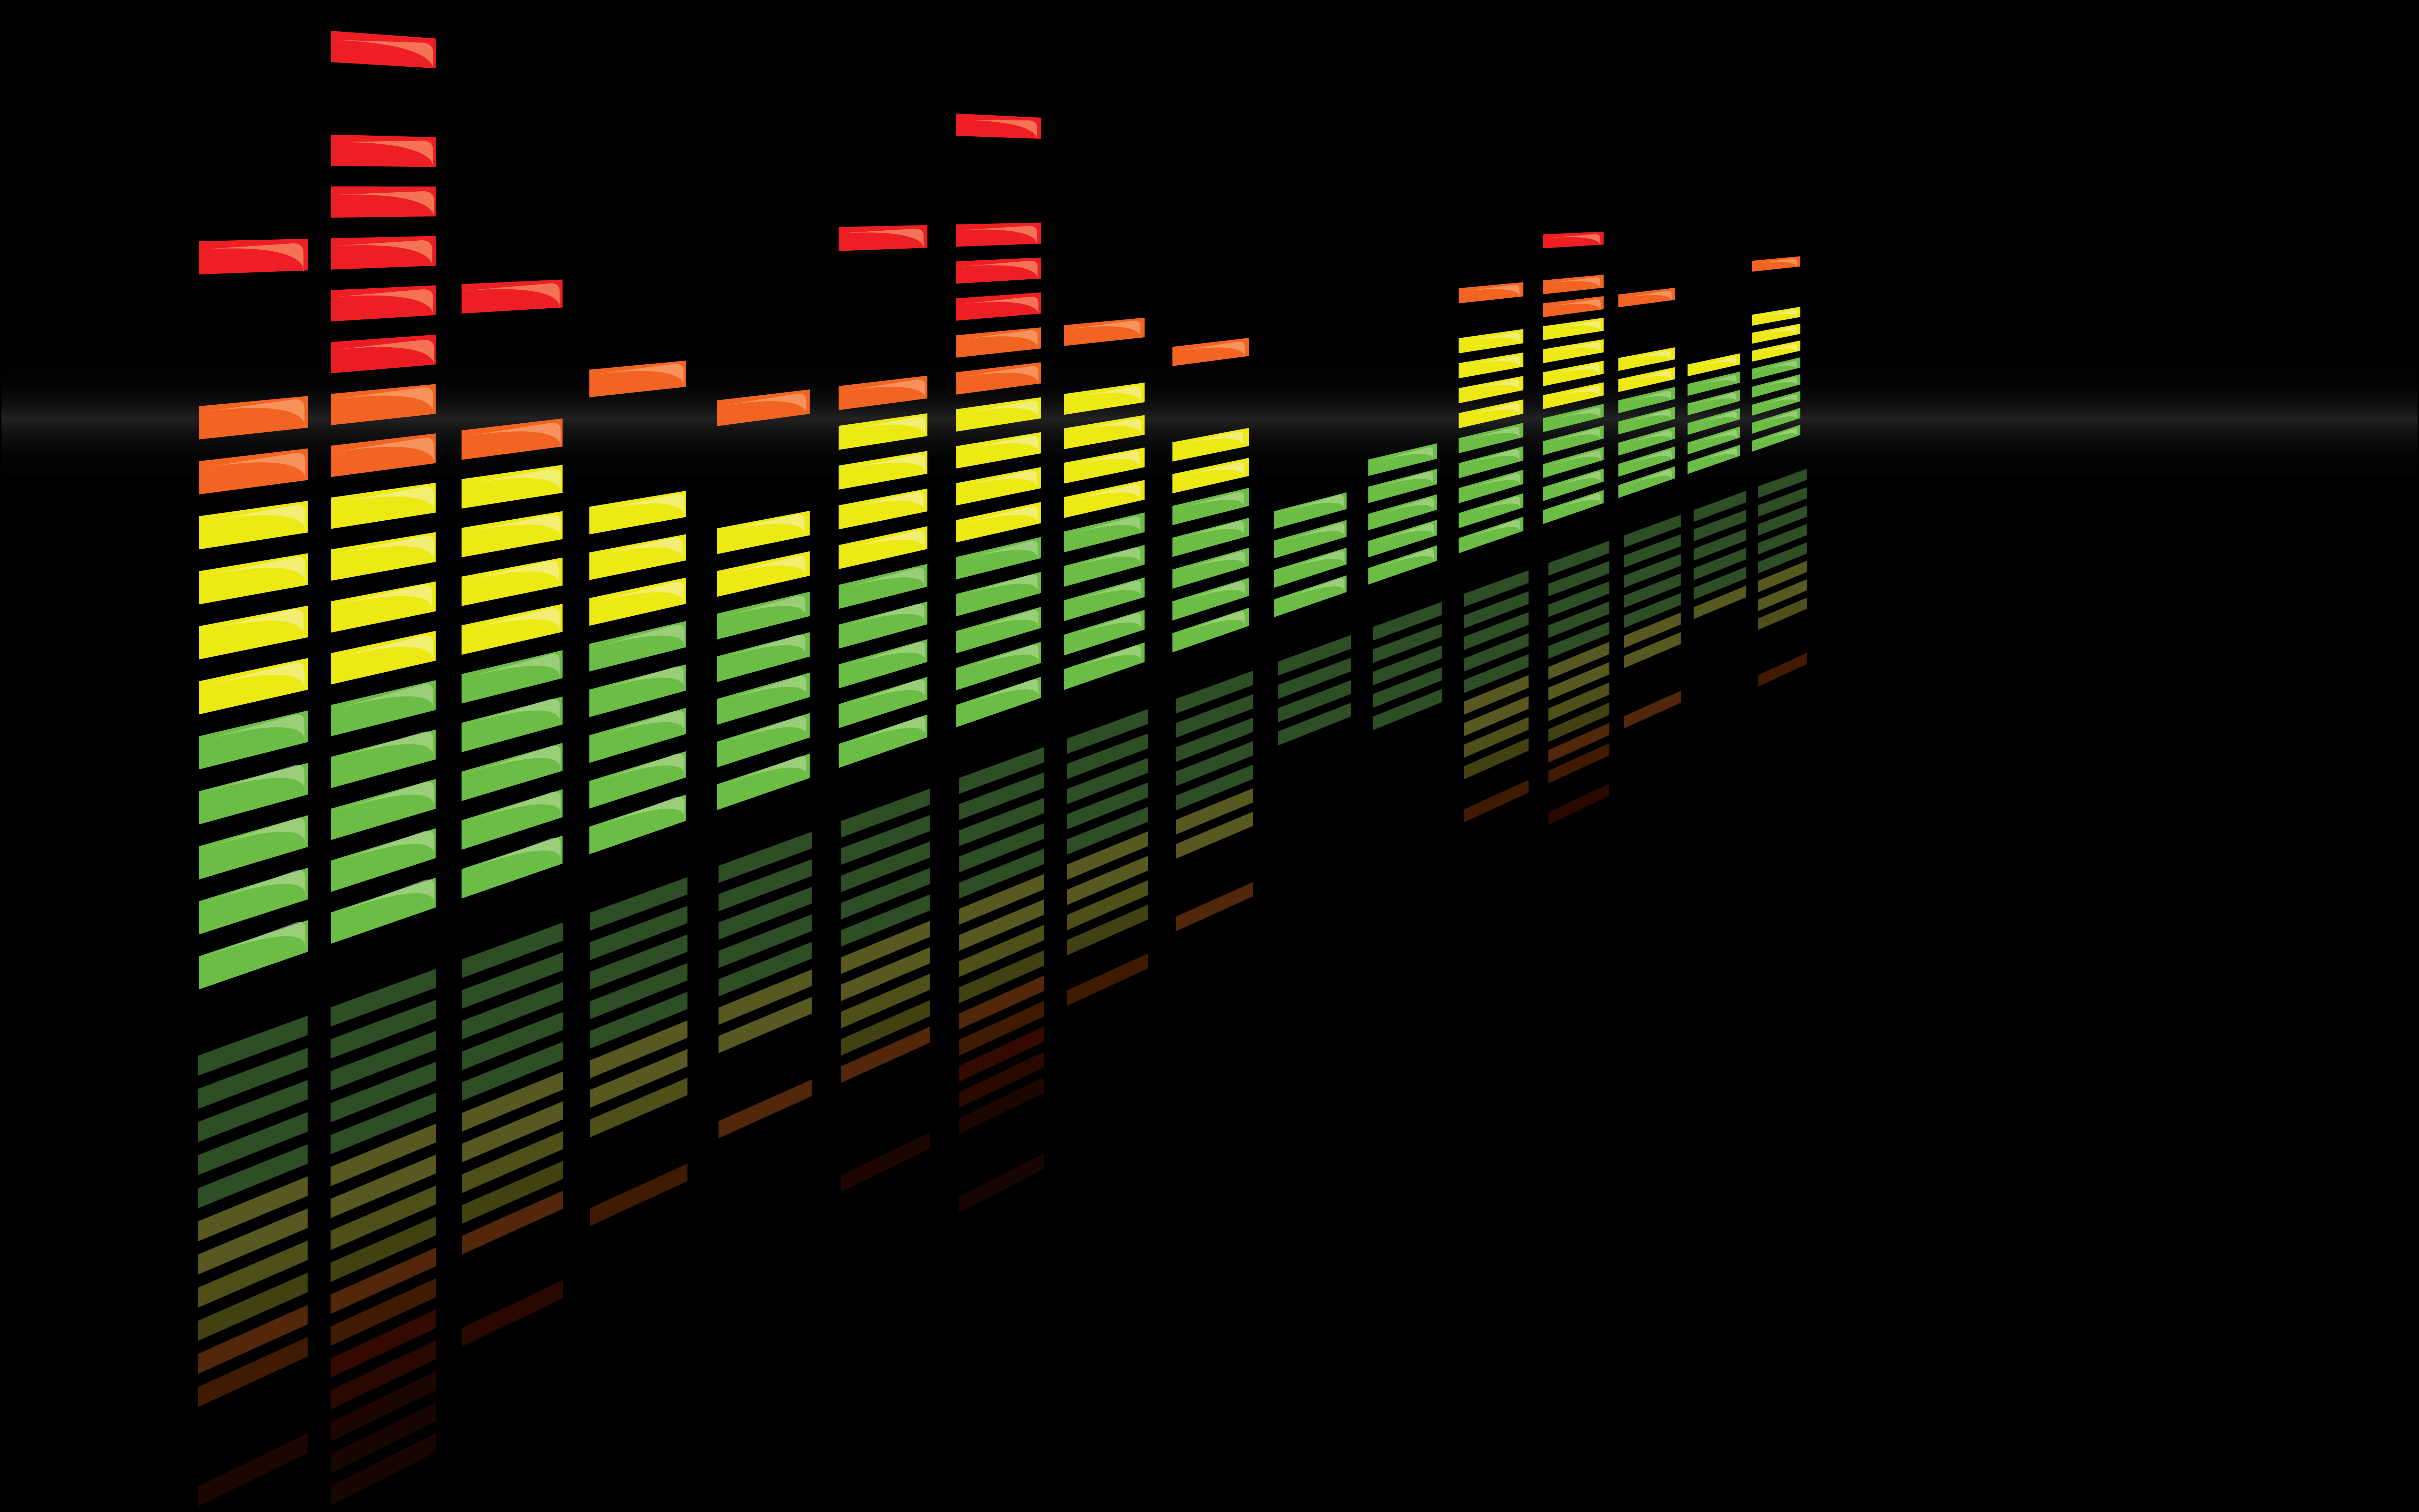 Download Free 3d Music Equalizer Wallpapers Hd: 301 Moved Permanently